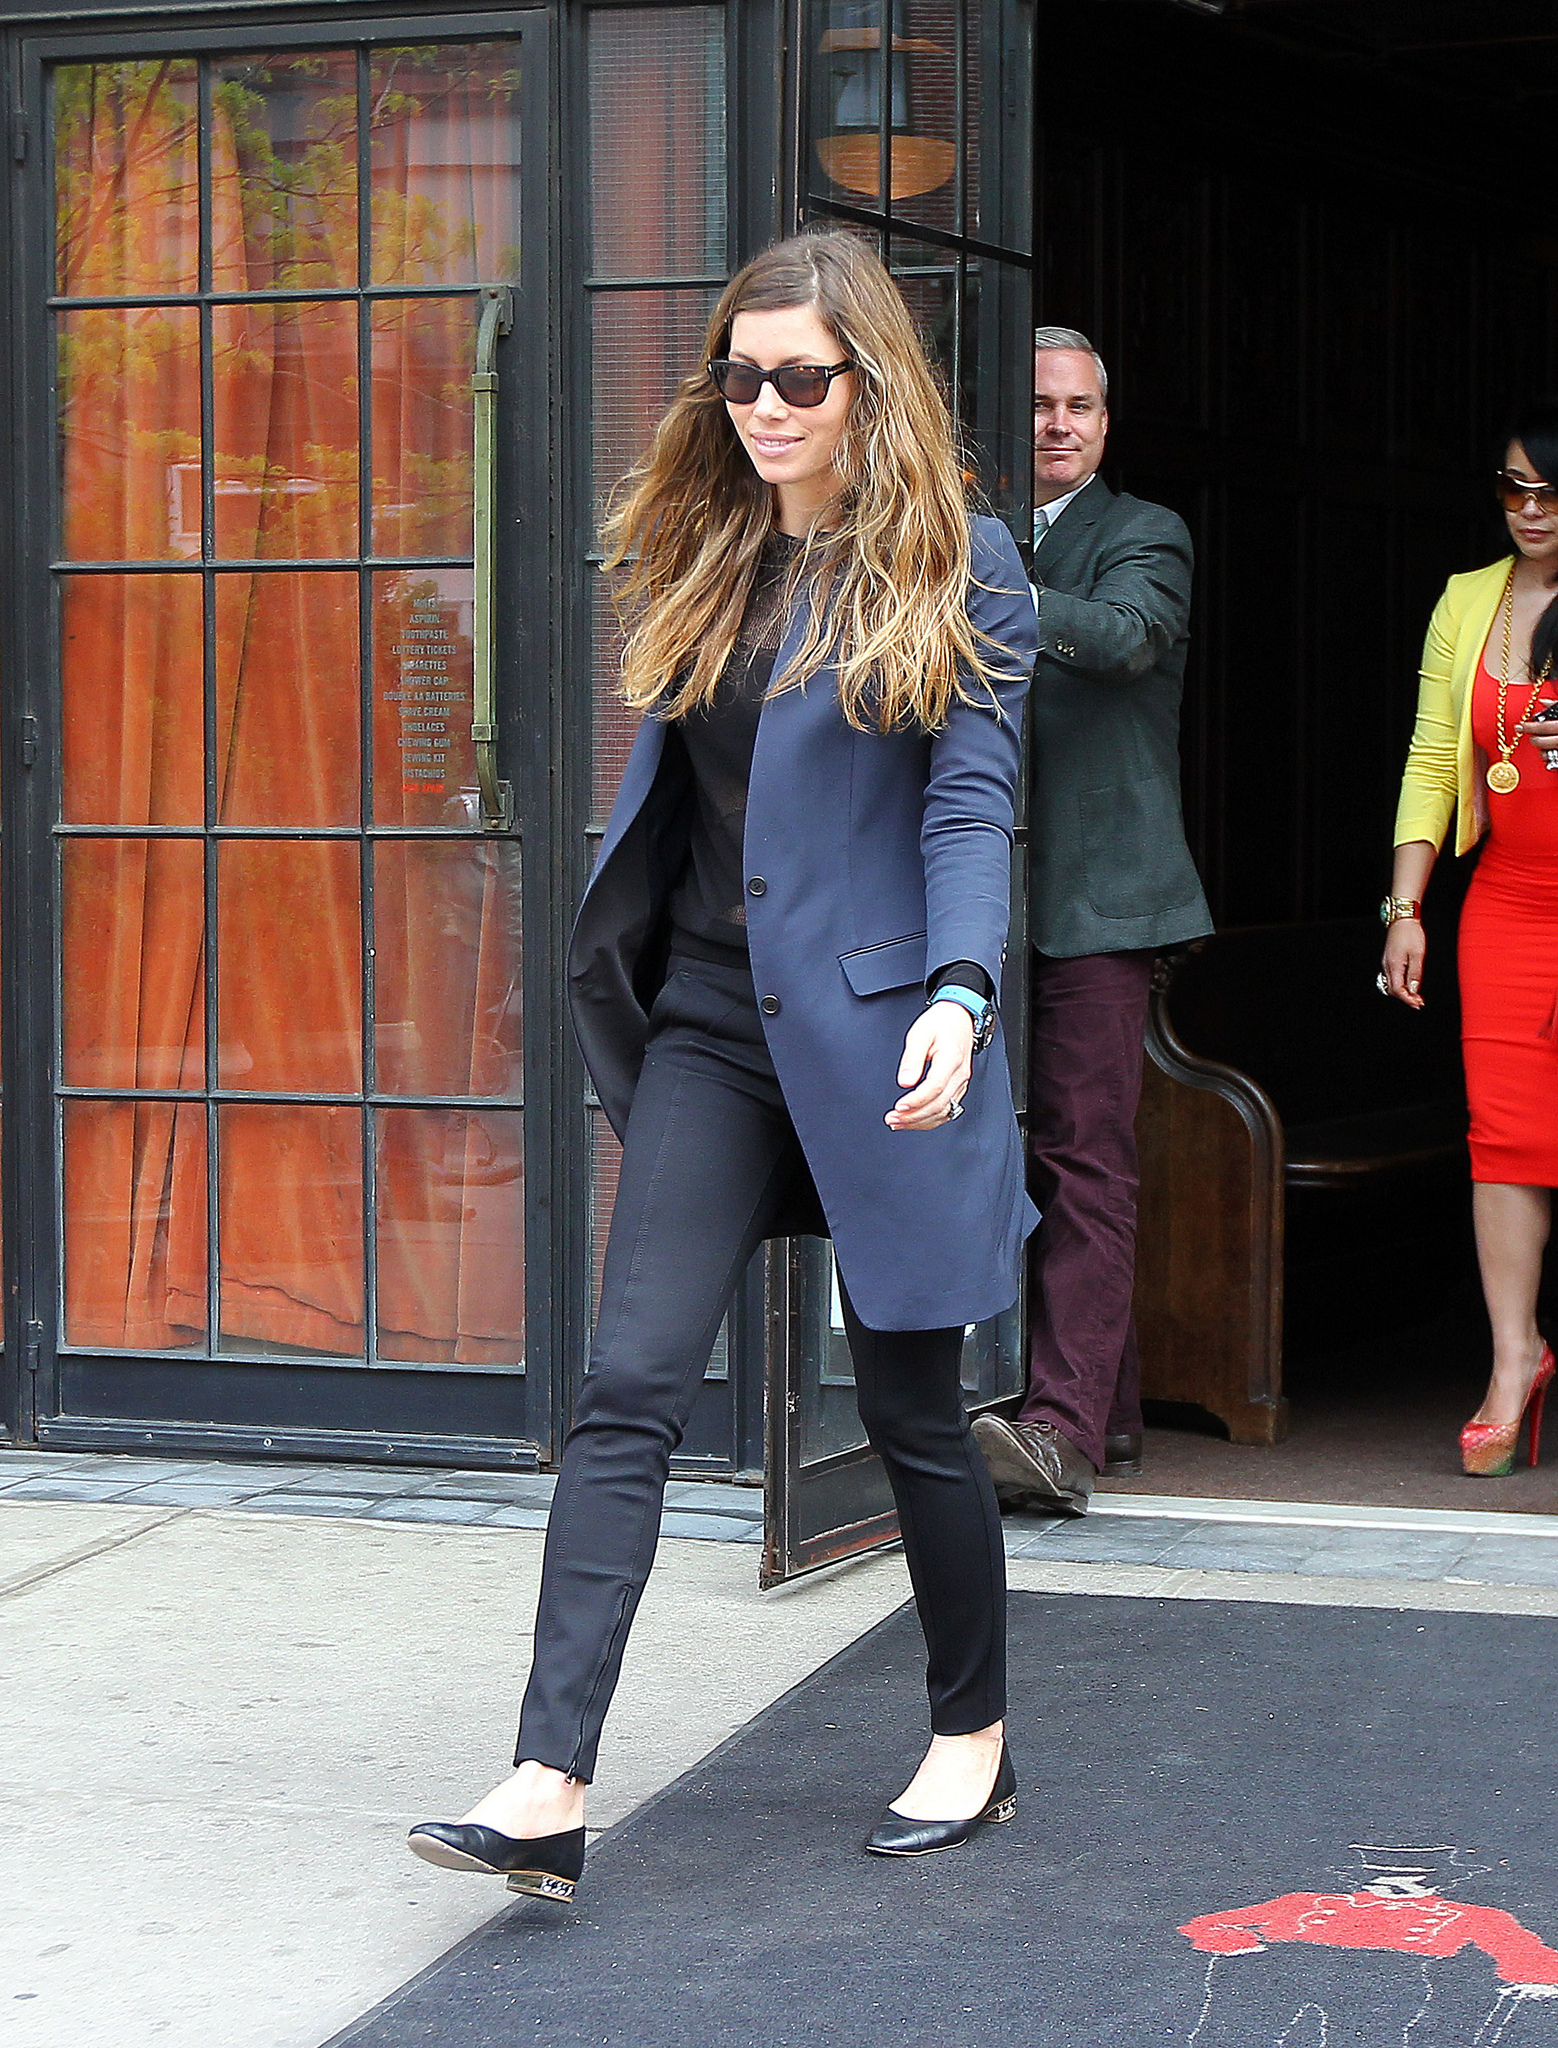 Star Street Style: Kiera Knightly, Miranda Kerr, Pixie Geldof and more